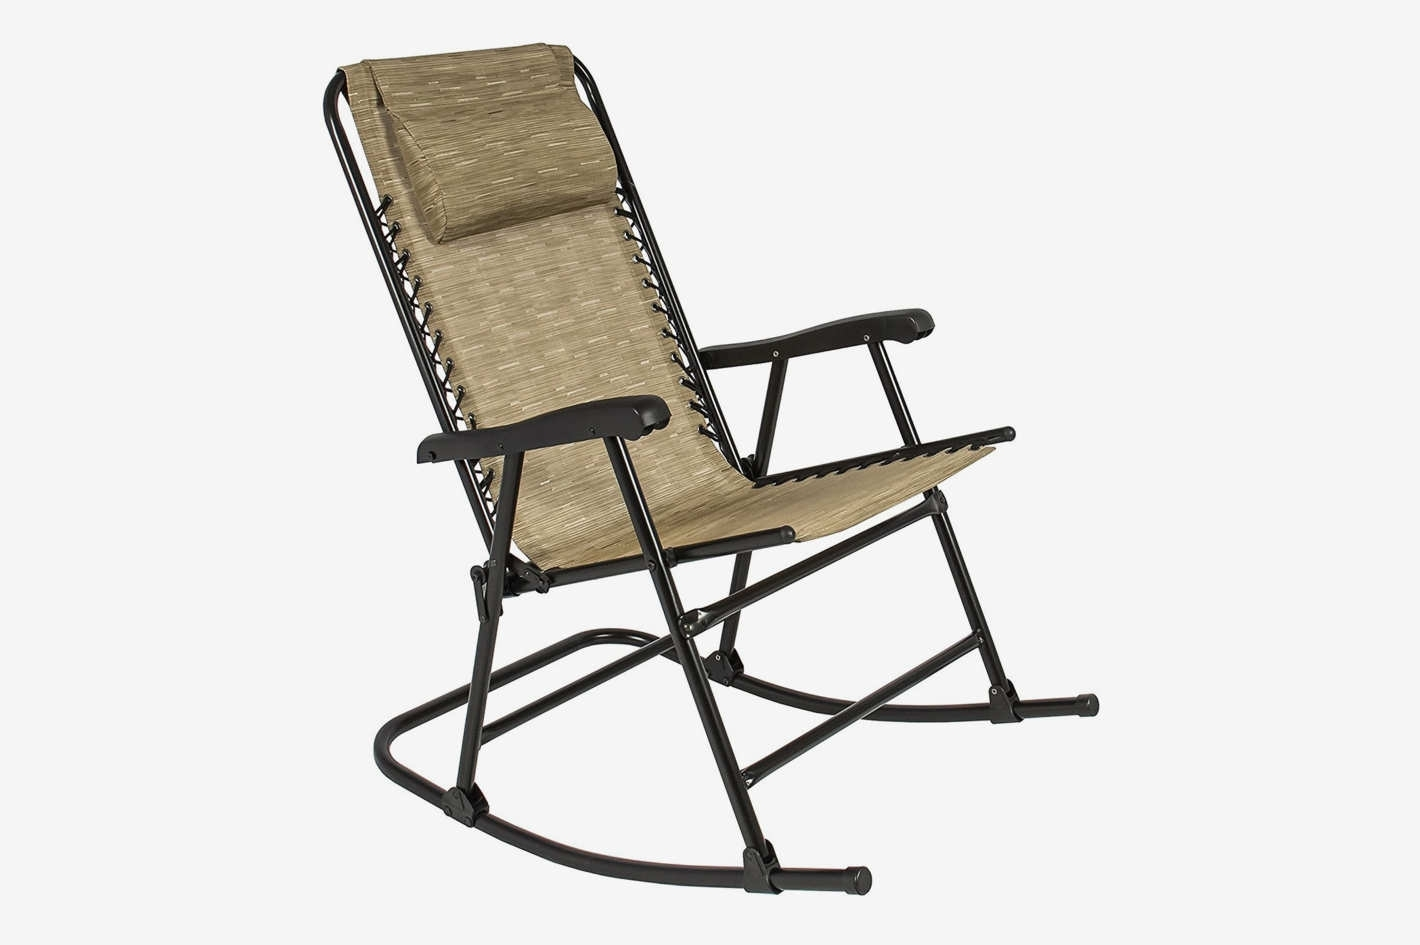 Inspiration about The 15 Best Rocking Chairs 2018 Regarding Patio Rocking Chairs With Covers (#10 of 15)